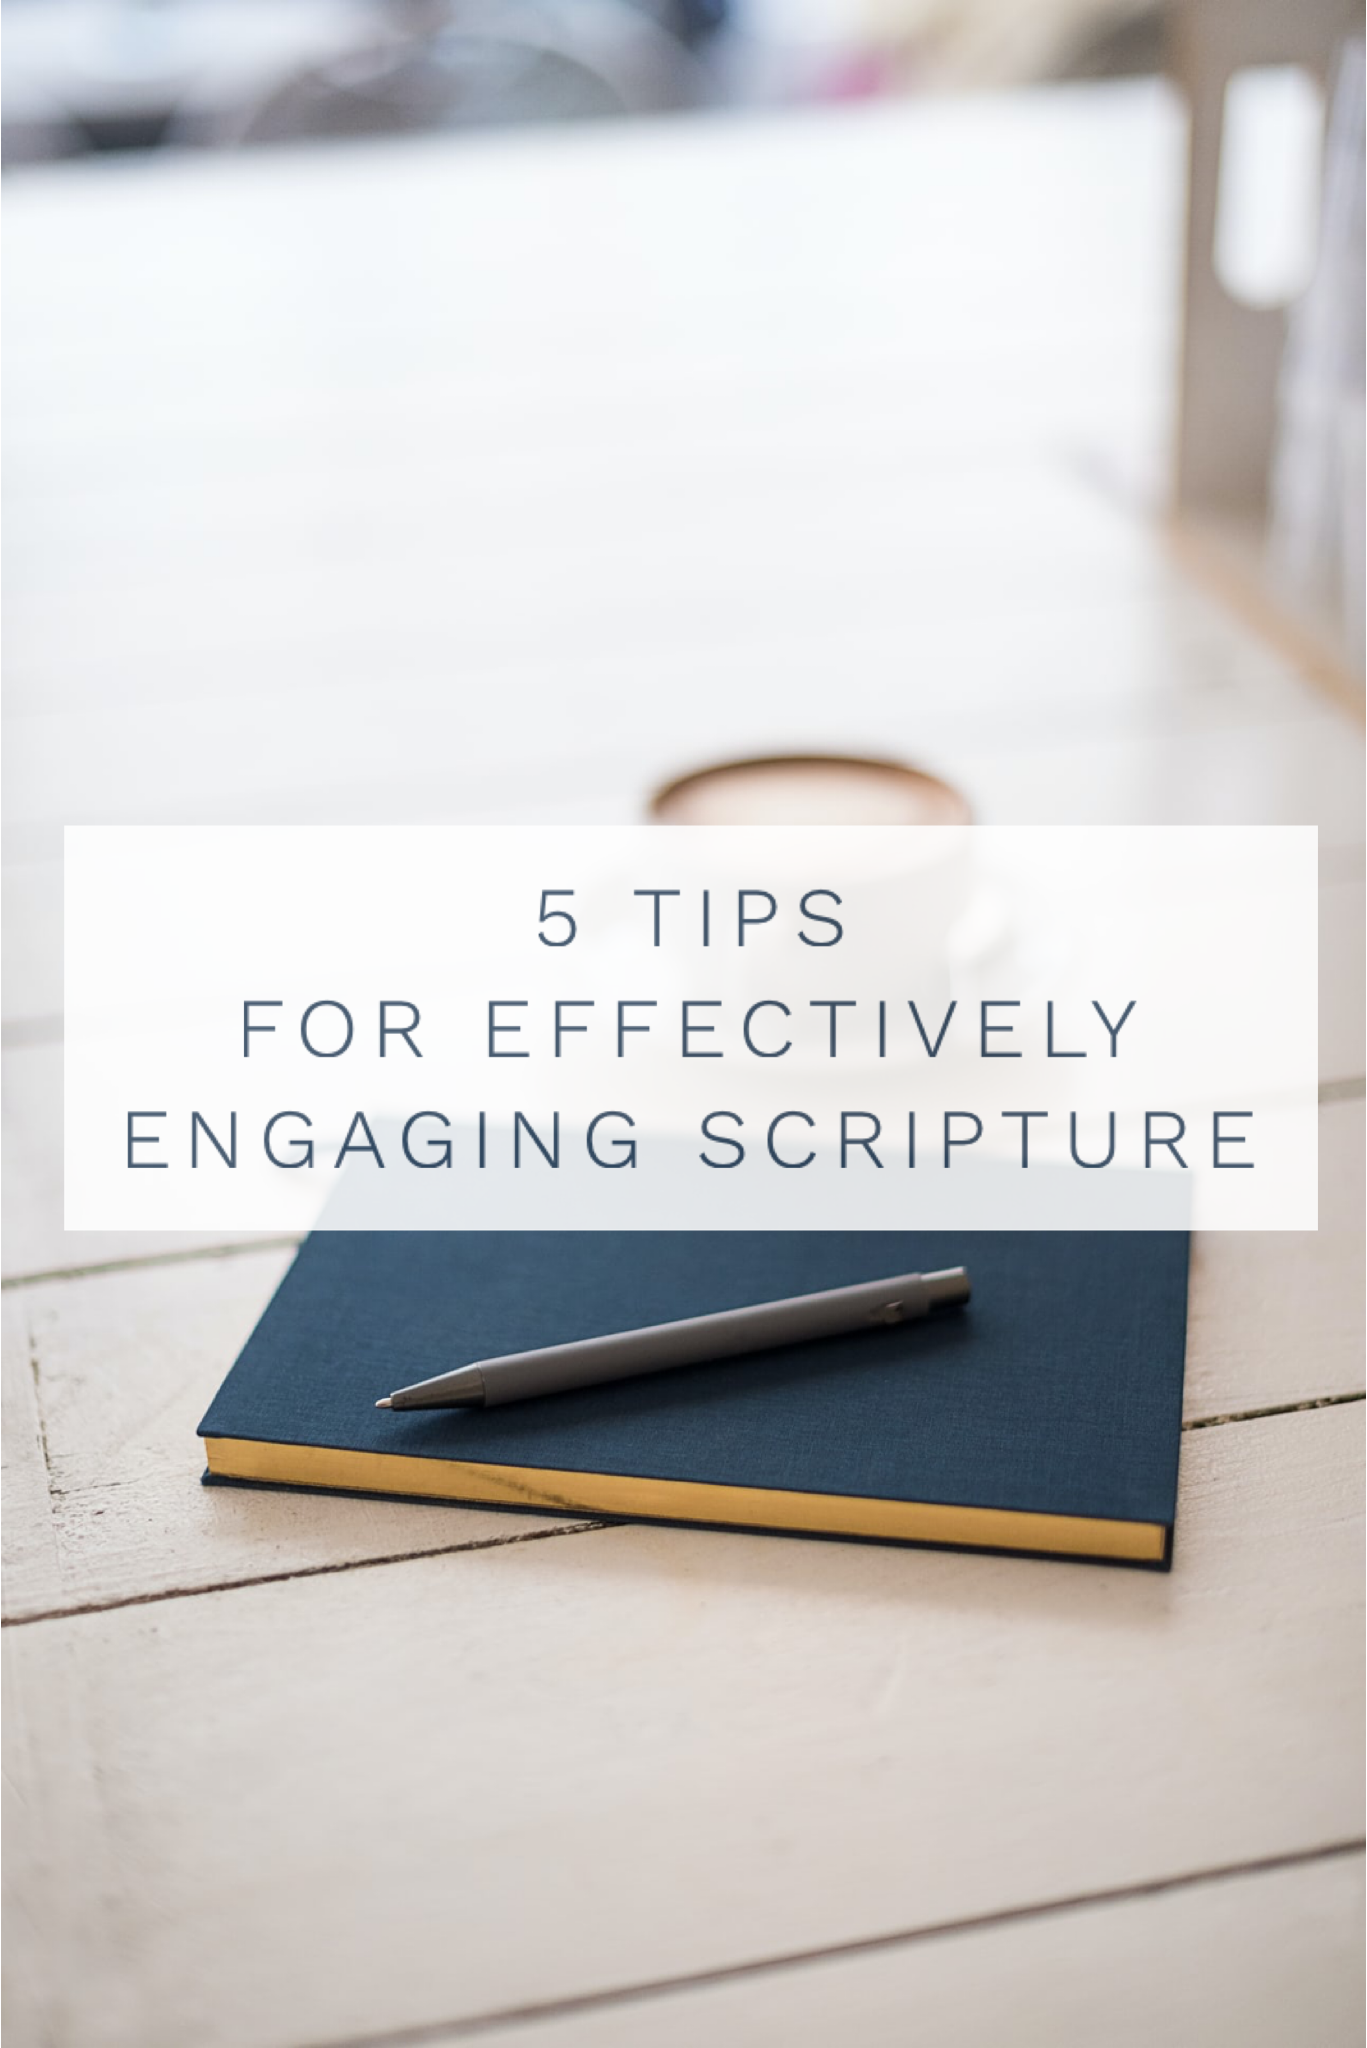 5 Tips for Effectively Engaging Scripture